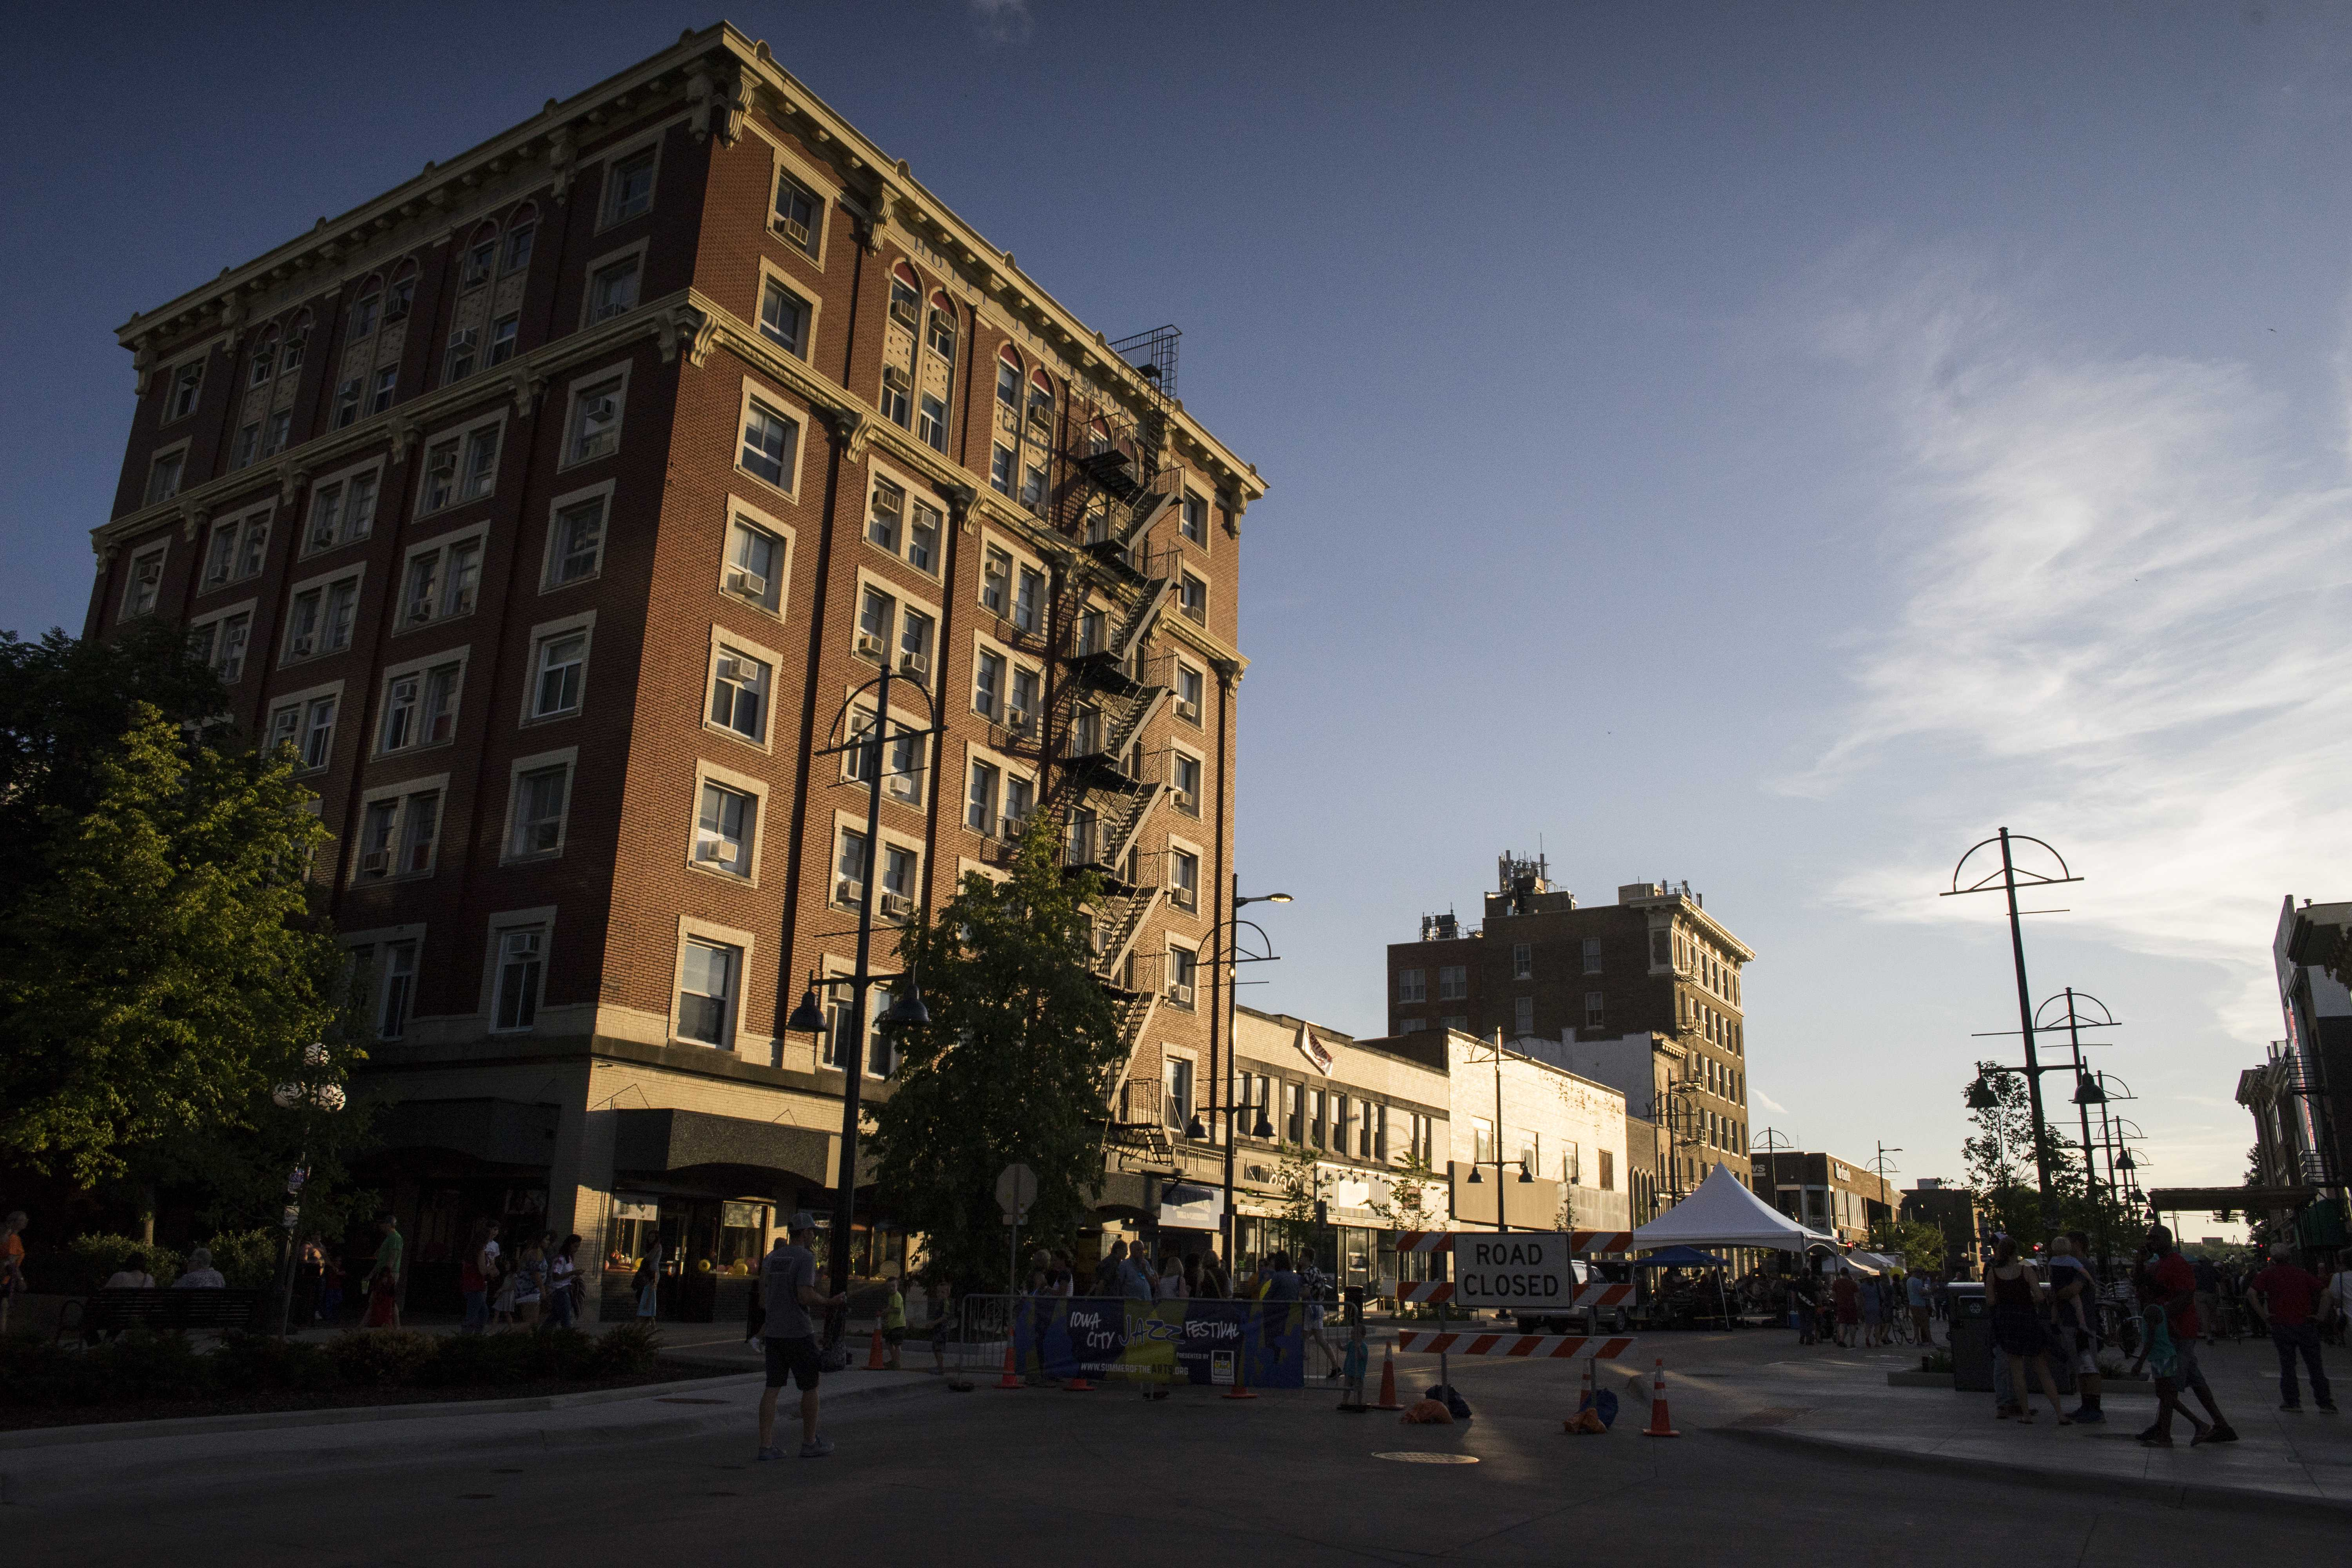 The Jefferson Building on Washington St. is seen during Jazz Fest on Sunday, July 2. This is within the Iowa City Downtown District, which held an event Thursday morning, discussing the continual progress being made in the downtown area. (Ben Smith/The Daily Iowan)